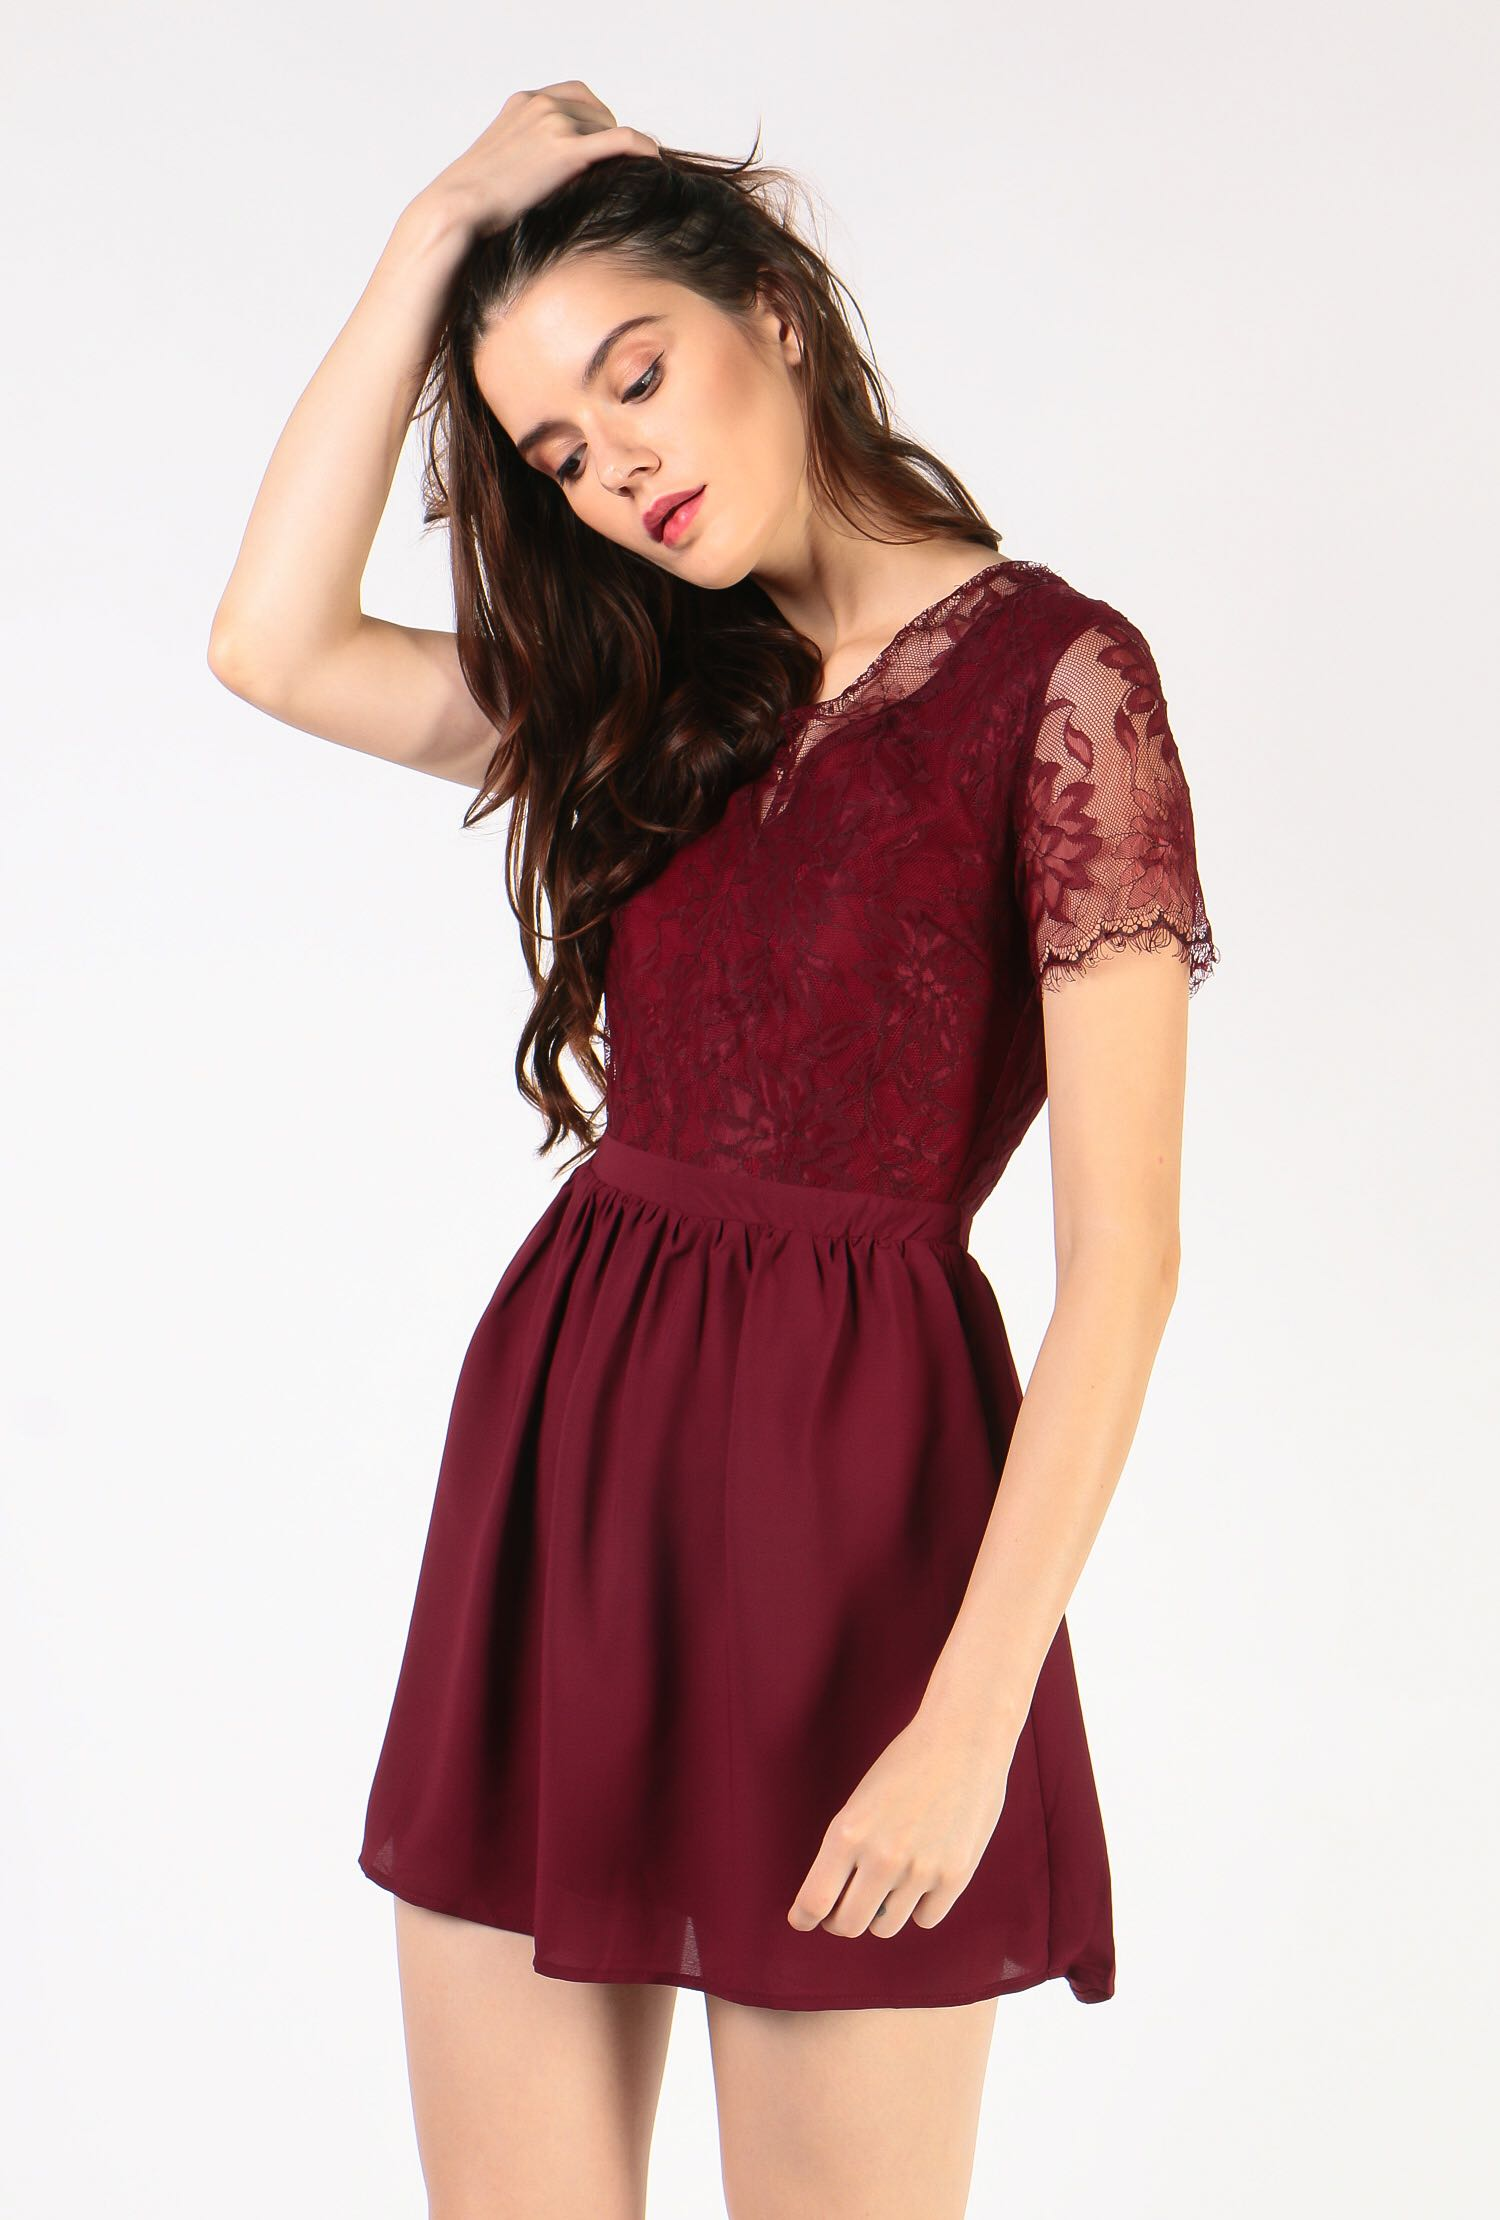 ac052681e1b Dressabelle Lace Contrast Fit   Flare Dress - Size M